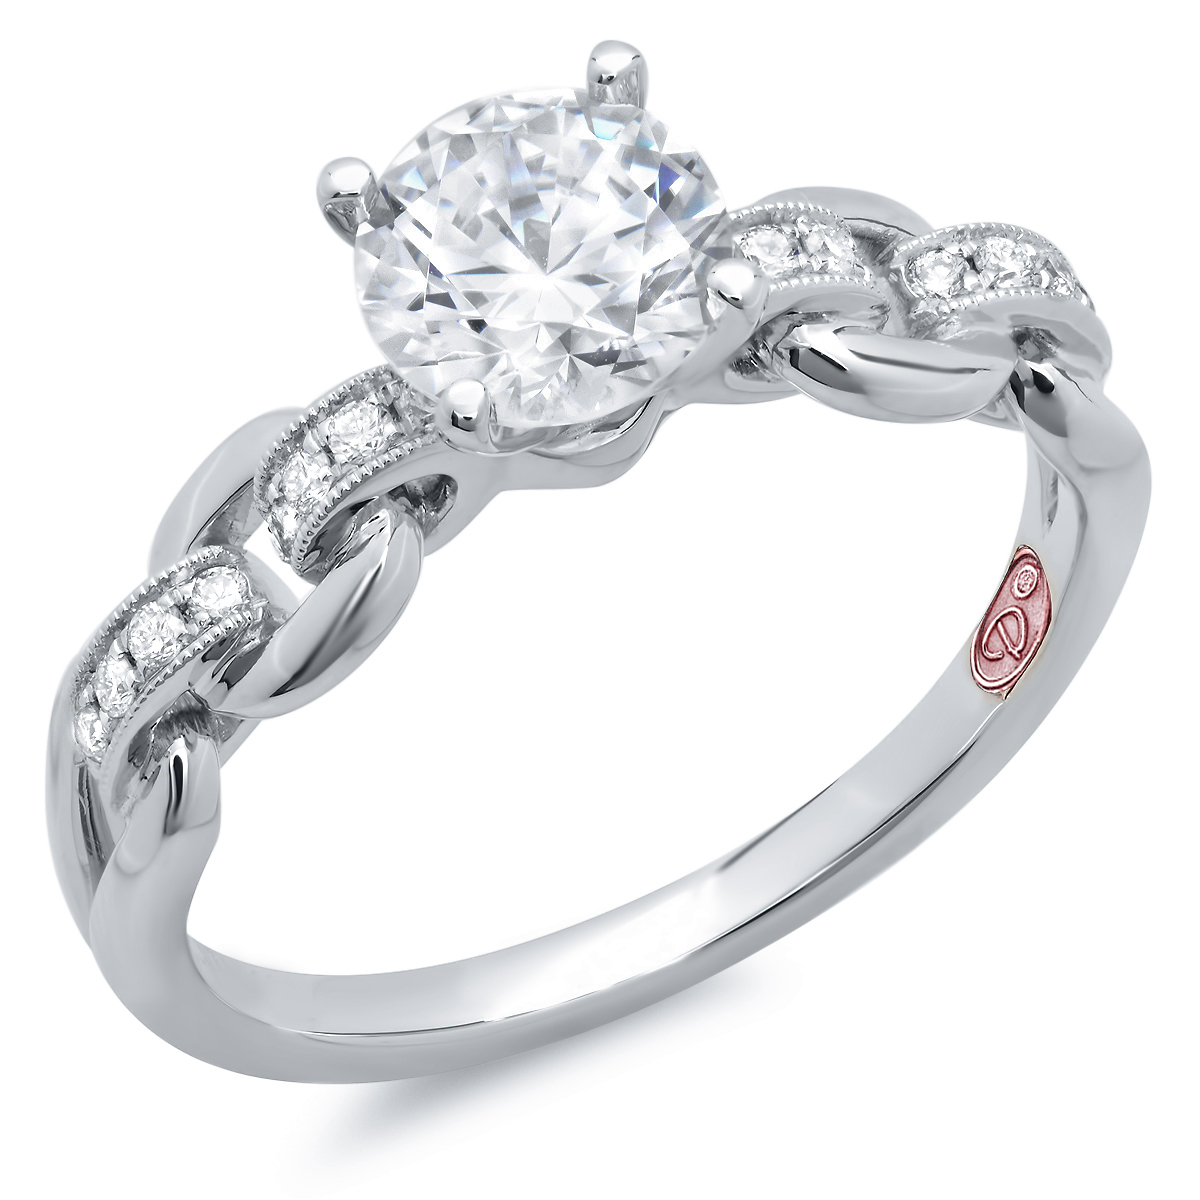 designer engagement rings dw7610 - Beautiful Wedding Rings